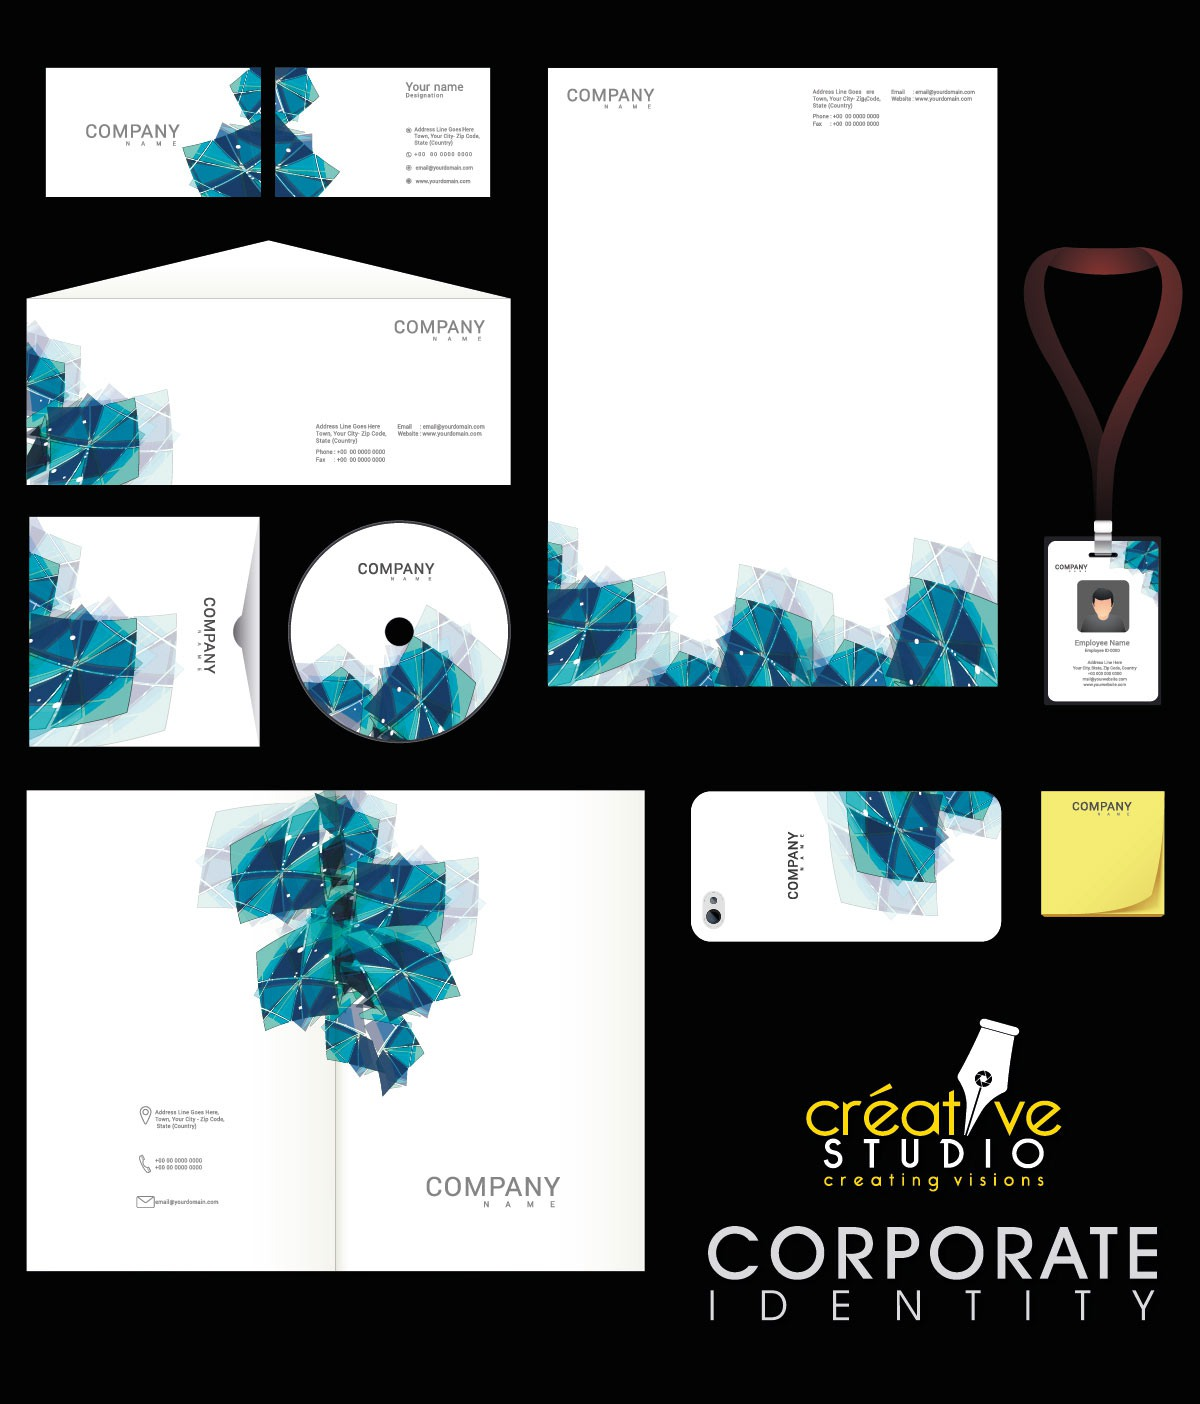 Corporate Identity 1 - PHOTOGRAPHY AND CINEMATOGRAPHY